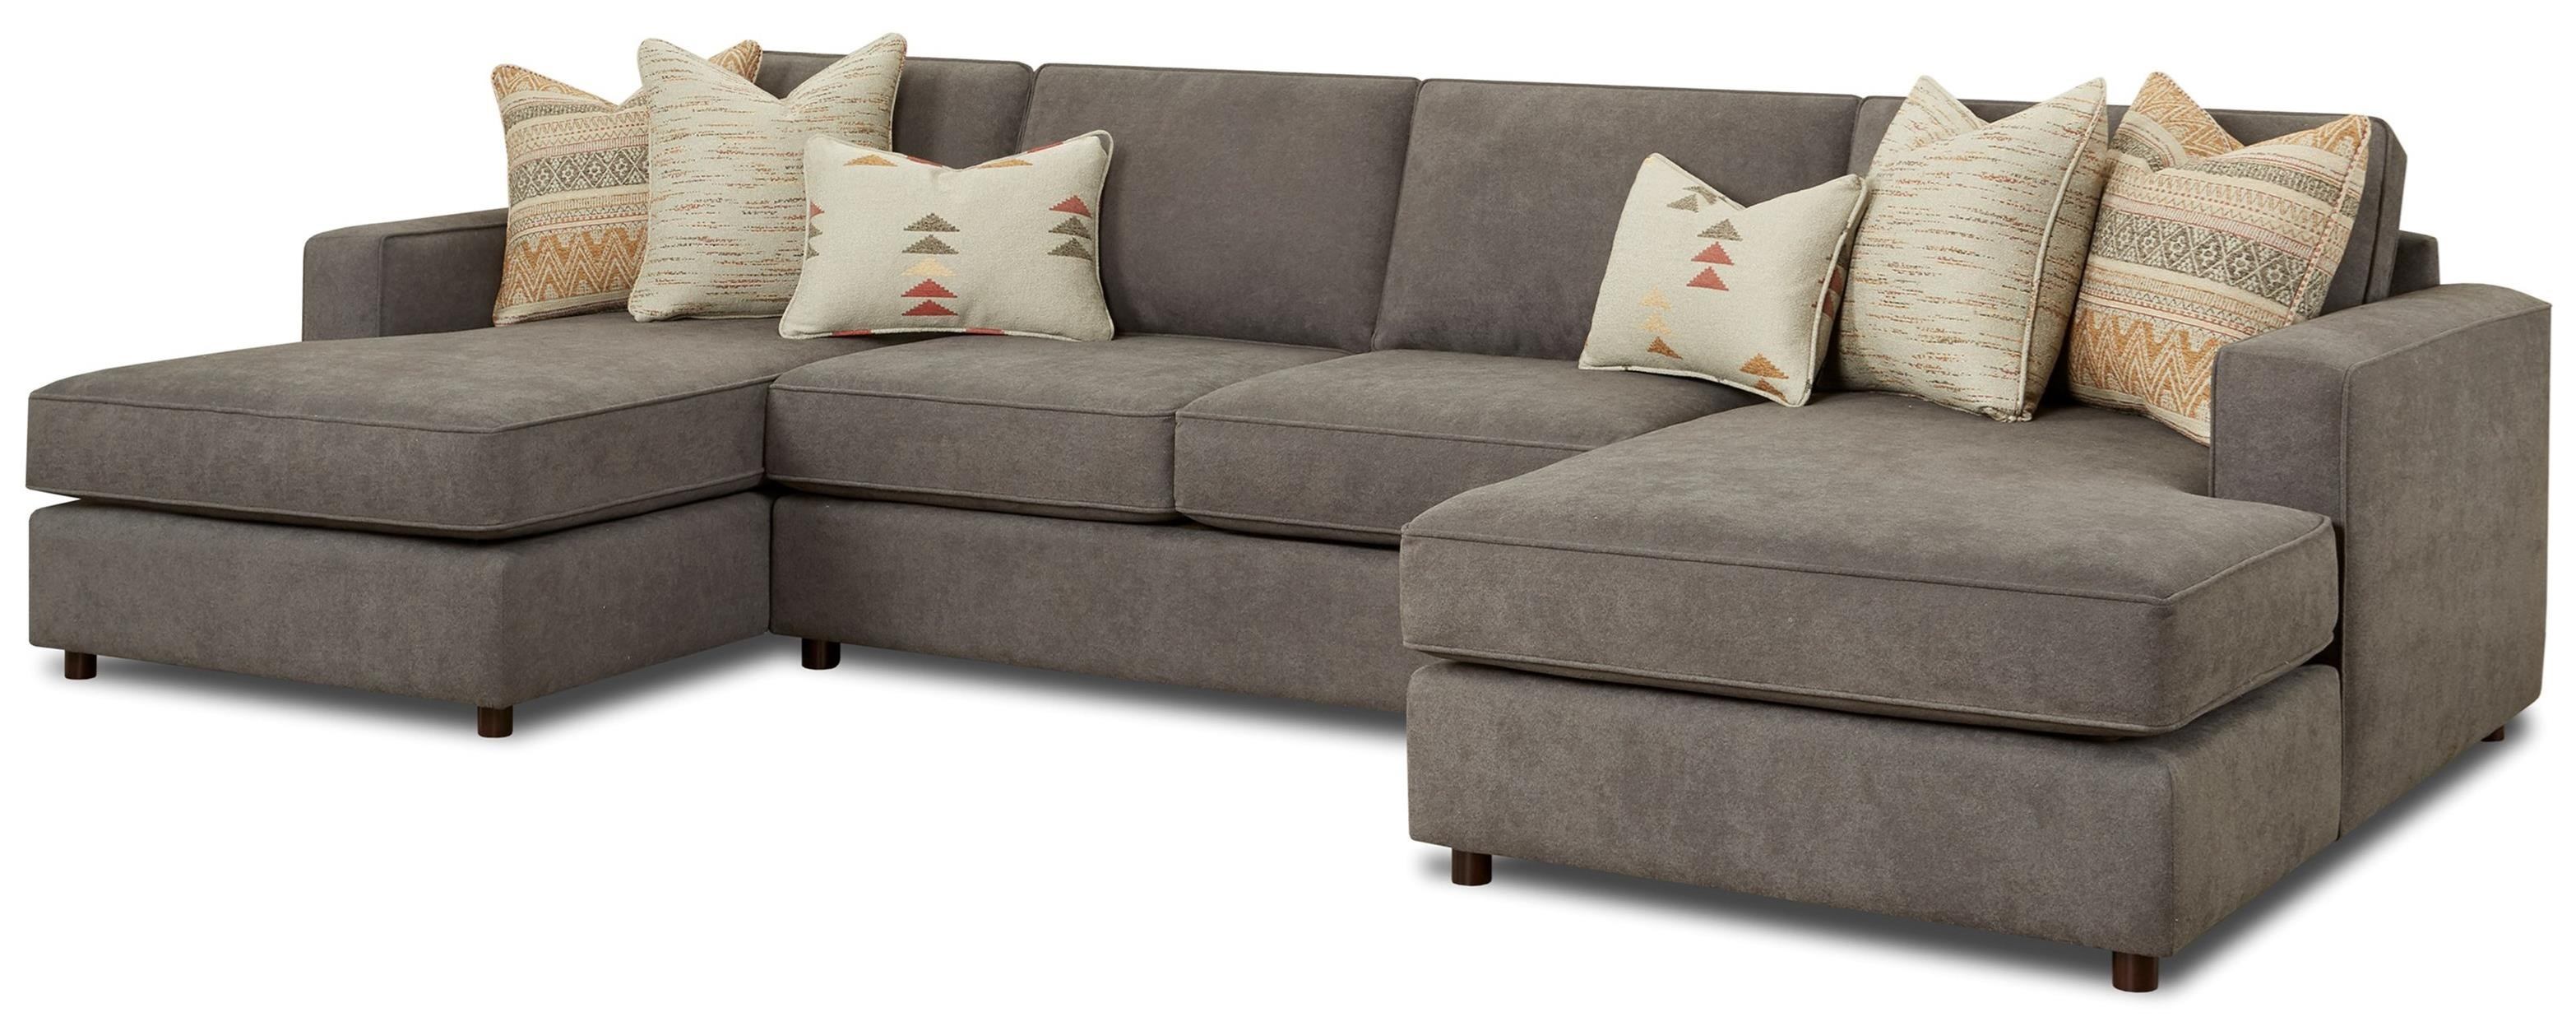 2061 RAYMOUR ASH 3-Piece Dual Chaise Sectional by Fusion Furniture at Story & Lee Furniture